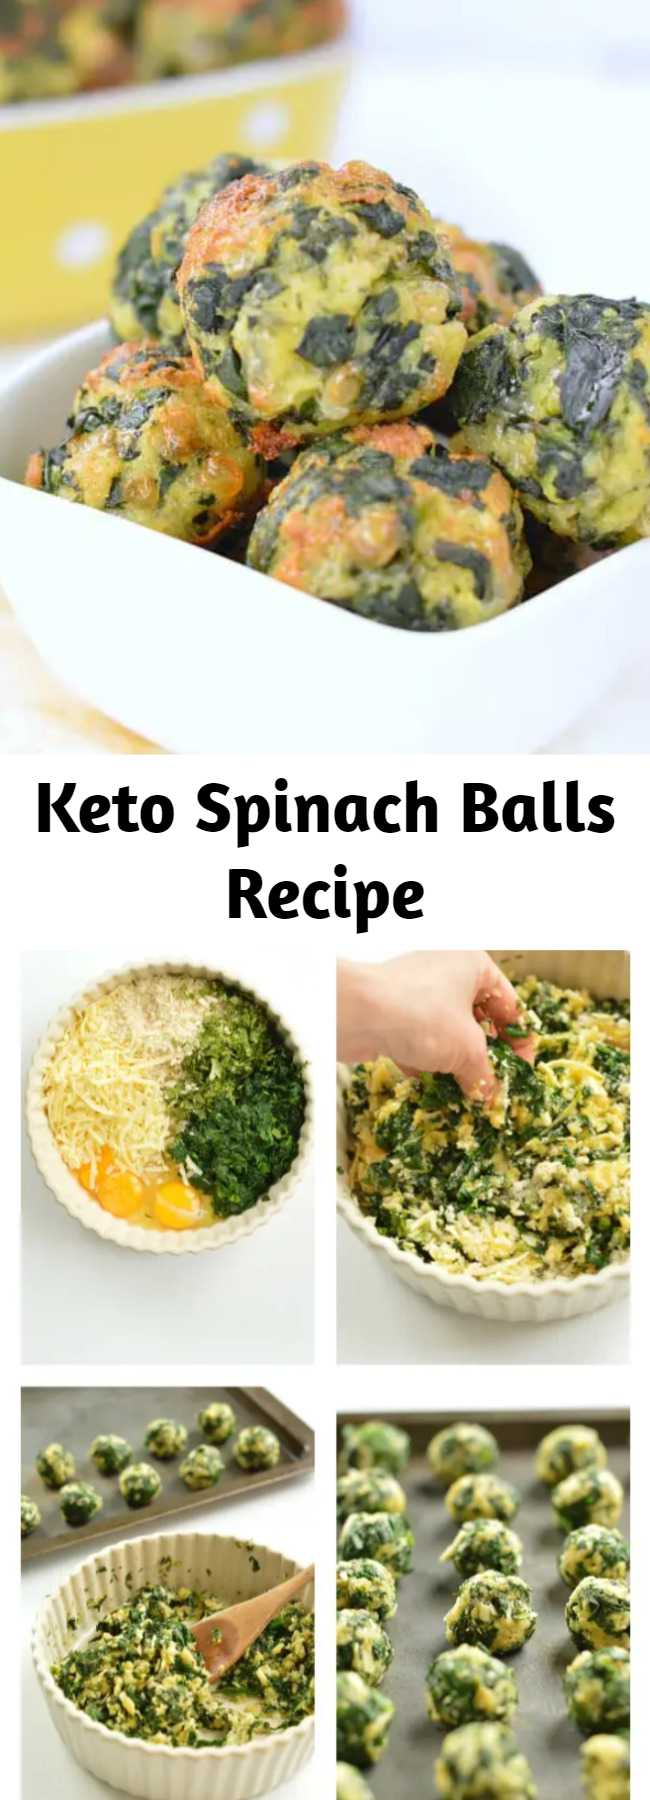 Keto Spinach Balls Recipe - These spinach balls are the best keto appetizer with a delicious cheesy chewy texture and spinach garlic flavor. Plus, the recipe is gluten-free so all your friends can enjoy them! #ketoappetizer #keto #spinachballs #spinach #thanksgiving #snack #lowcarb #almondflour #glutenfree #ketorecipes